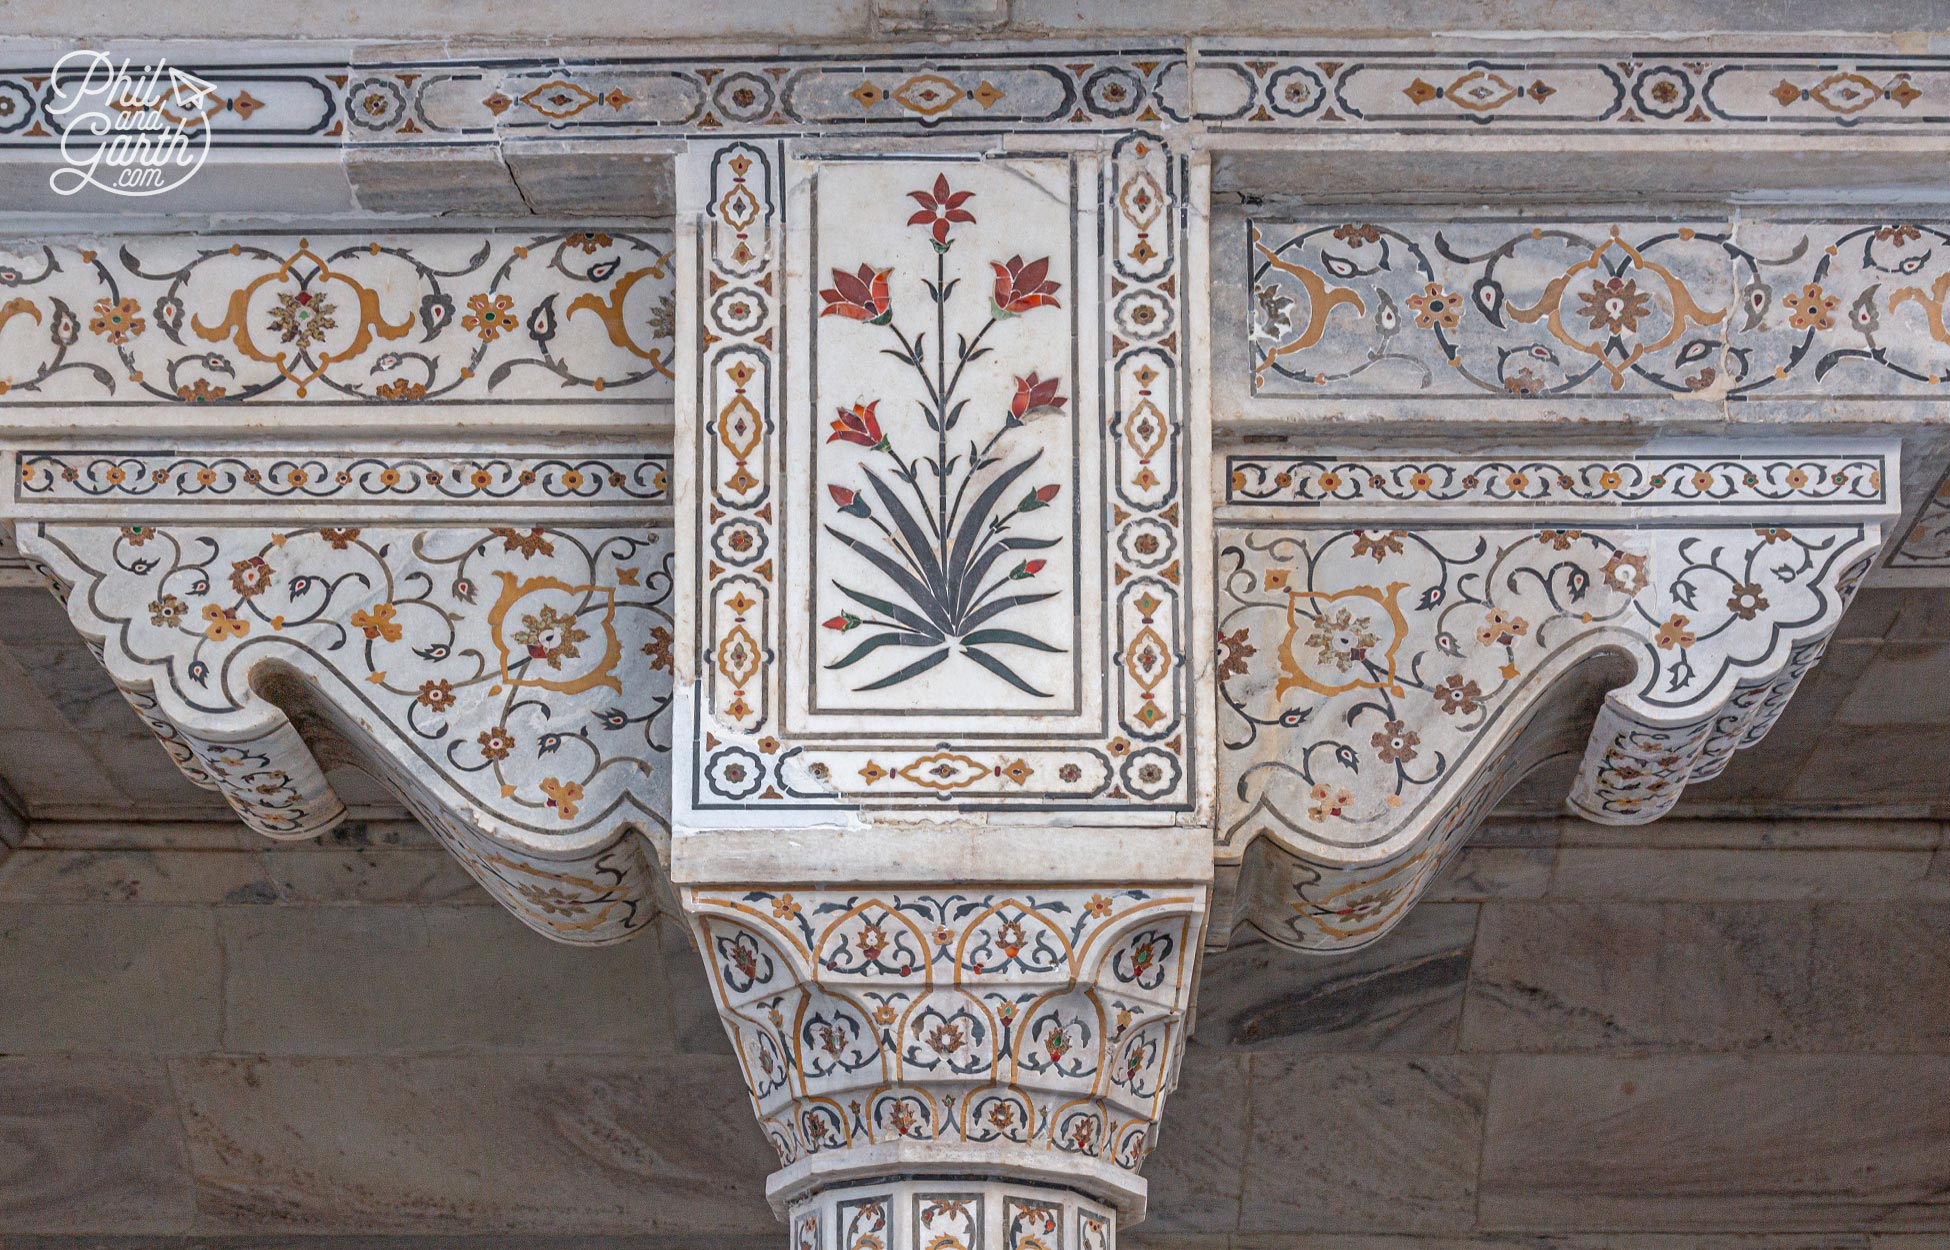 Emperor Shah Jahan's signature design style used in the Khas Mahal Palace